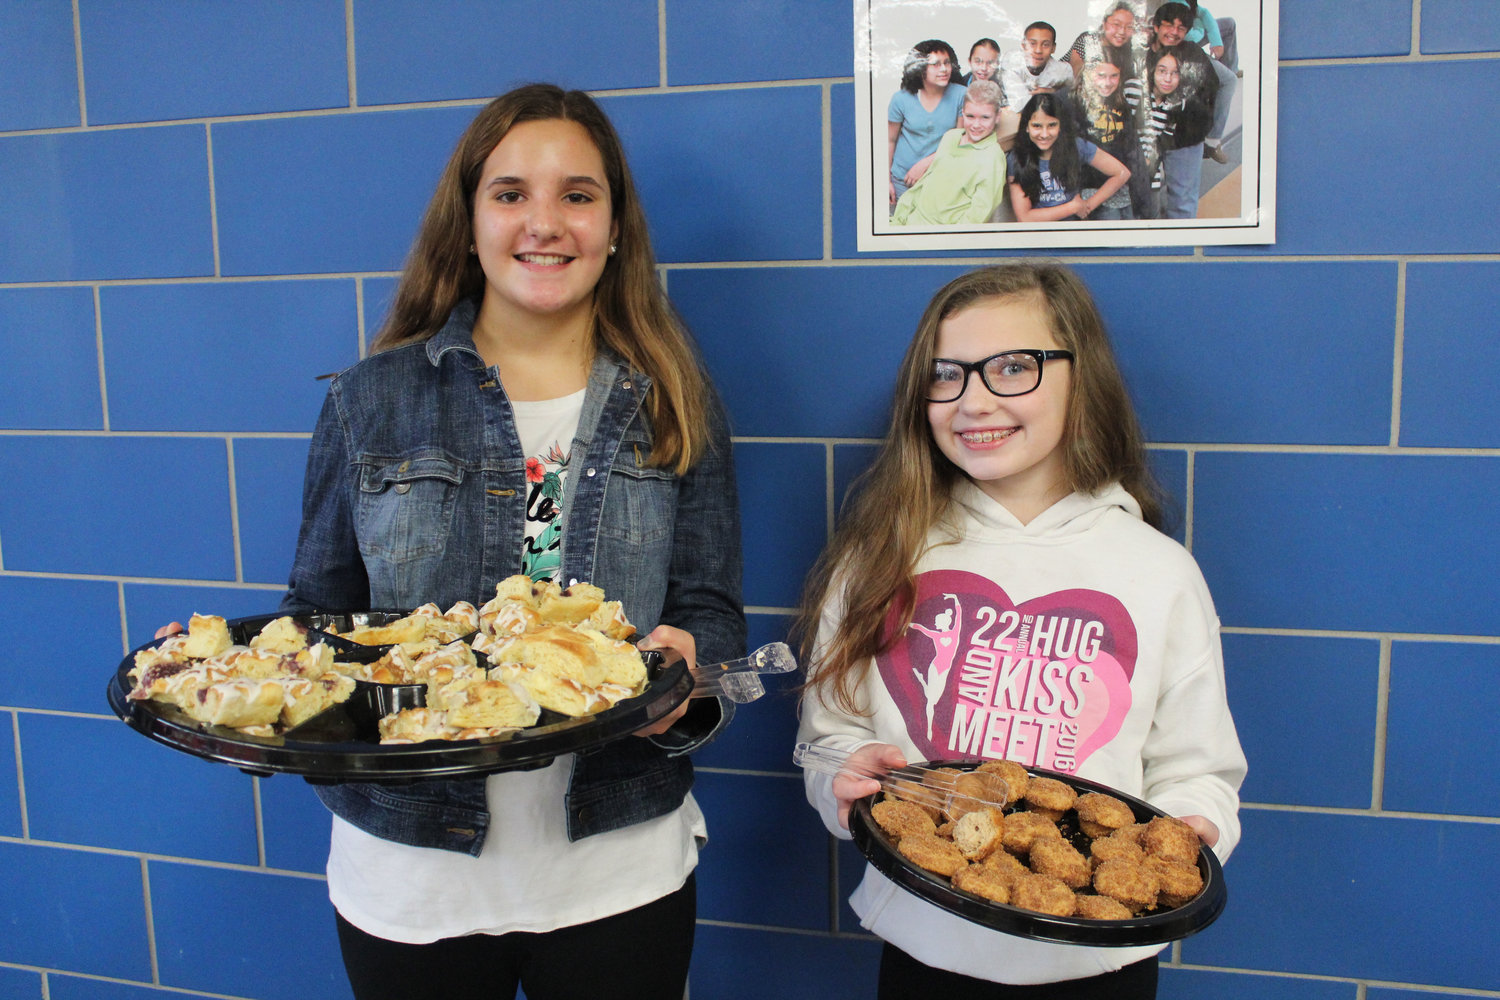 Morgan Judy and Claire Munnelly serve breakfast during the Veterans Day Program at MAMS Nov. 9.